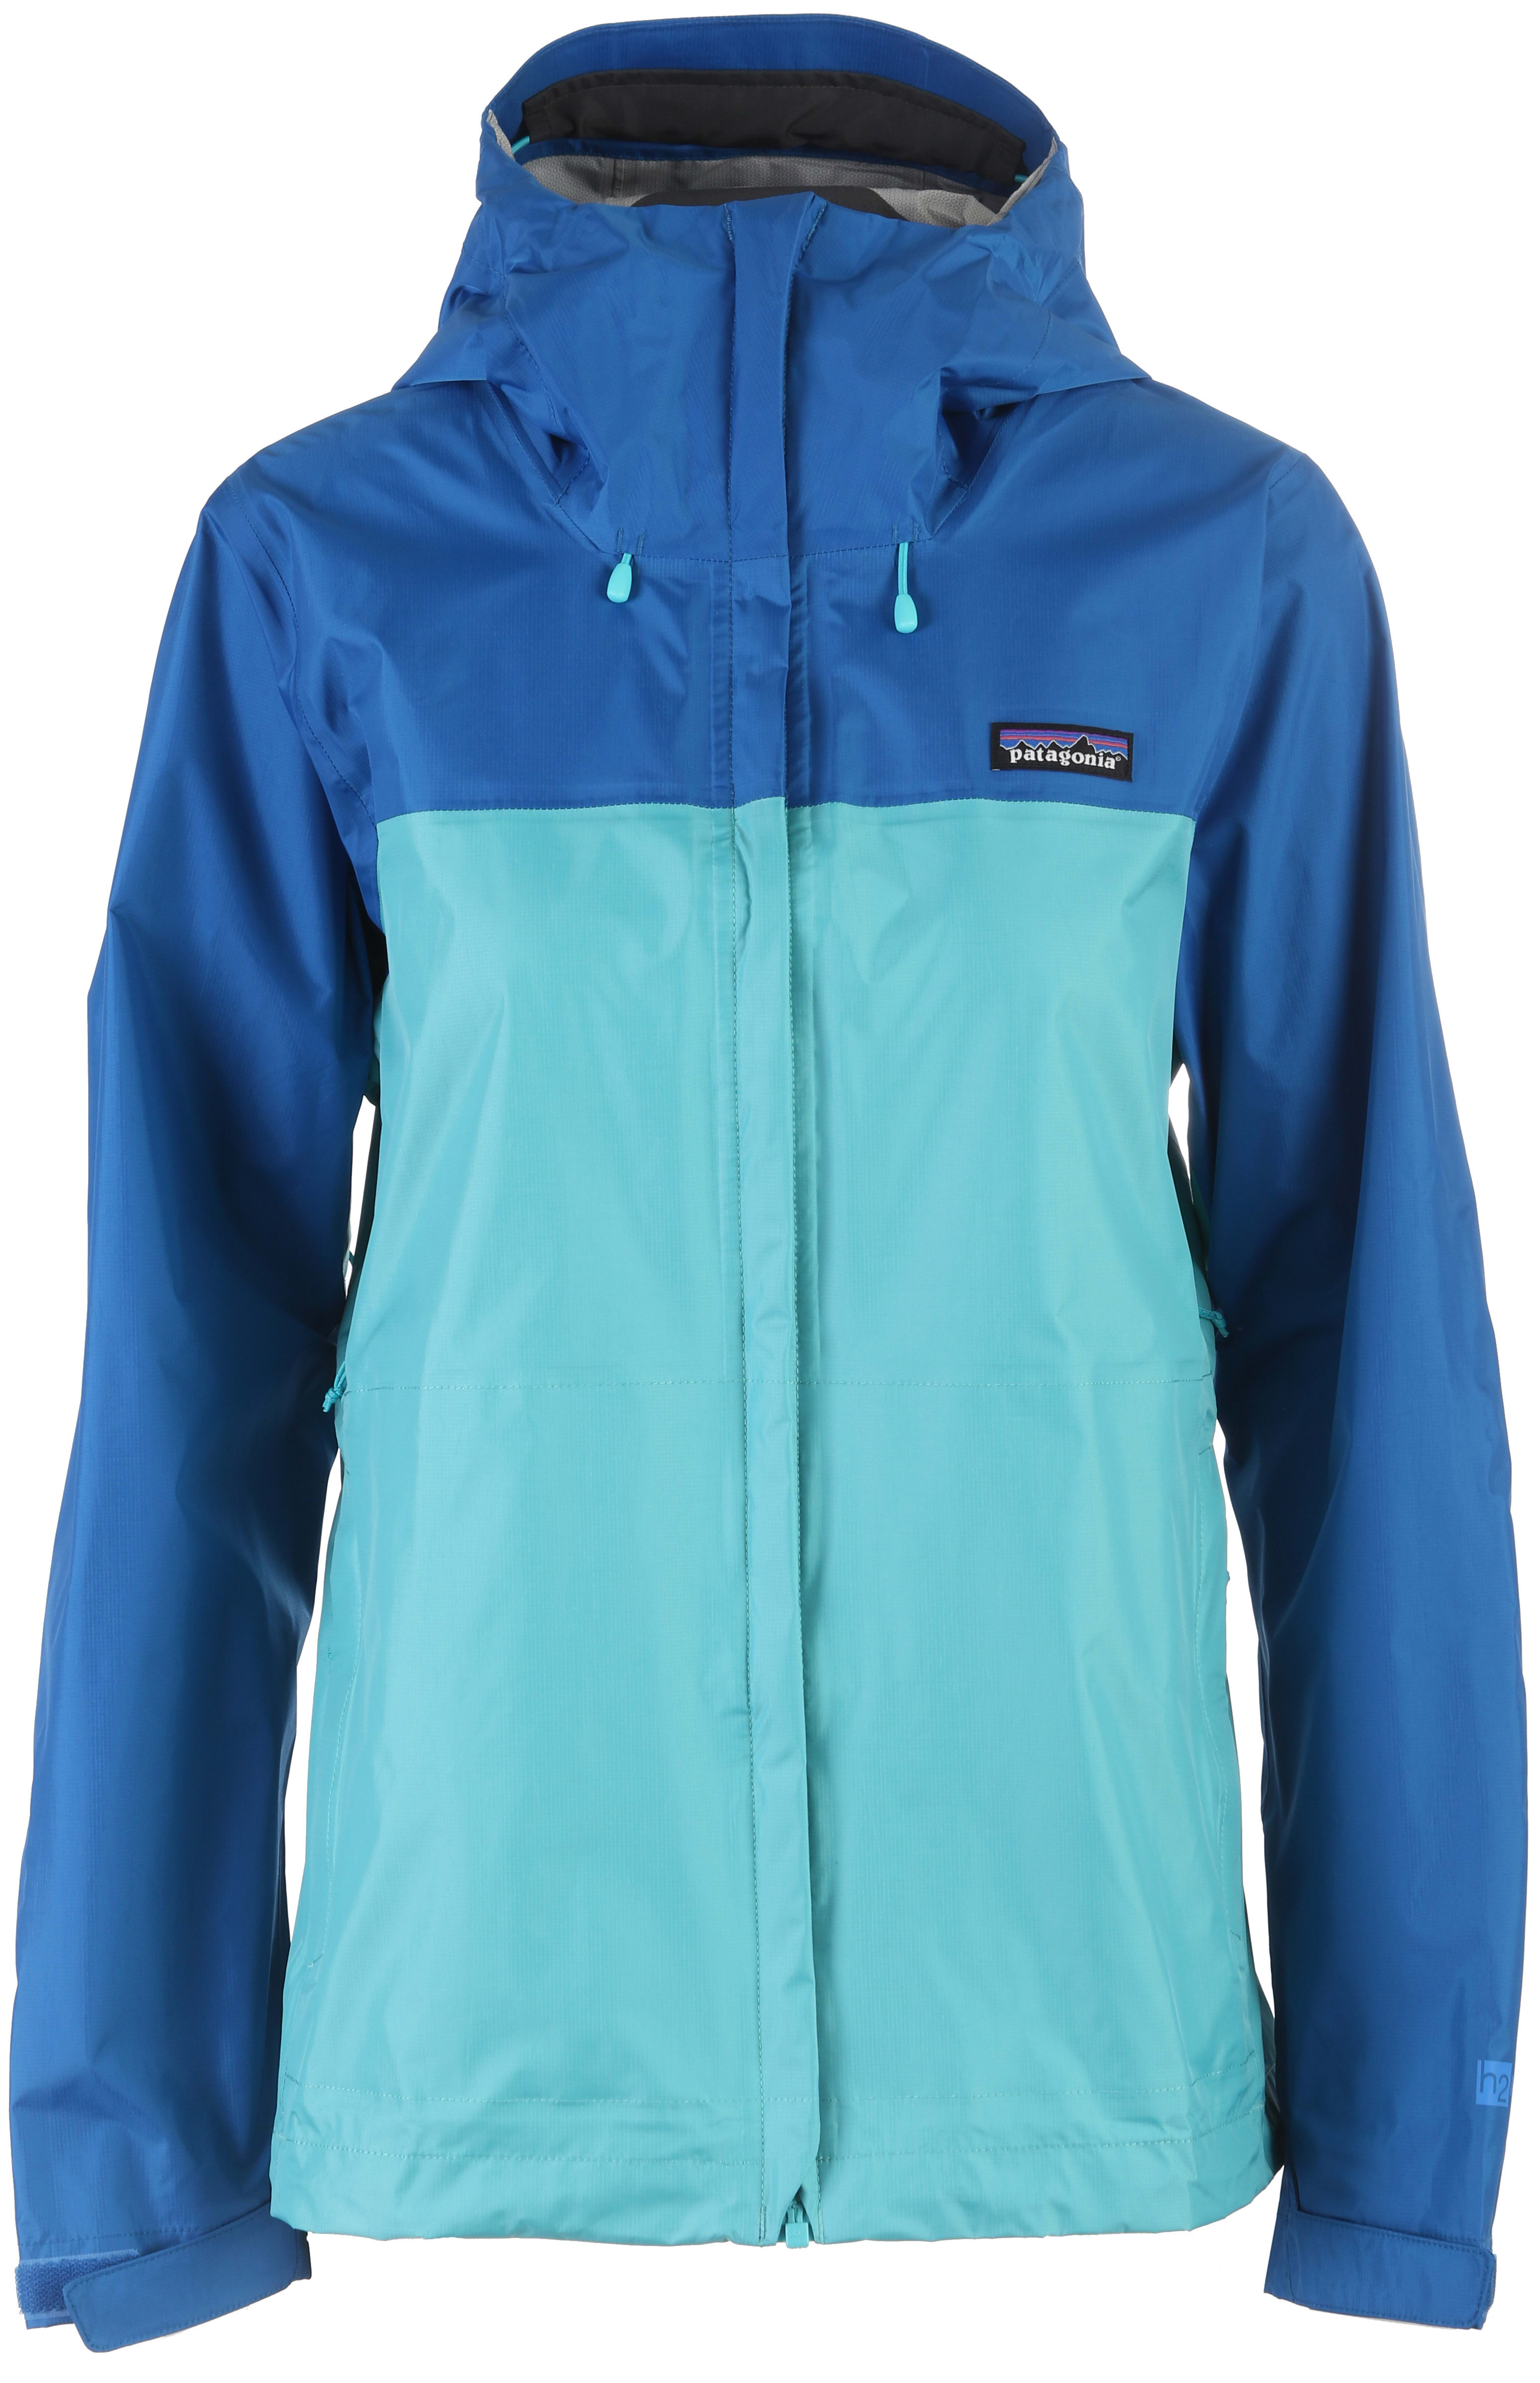 On Sale Patagonia Torrentshell Jacket Womens Up To 45 Off